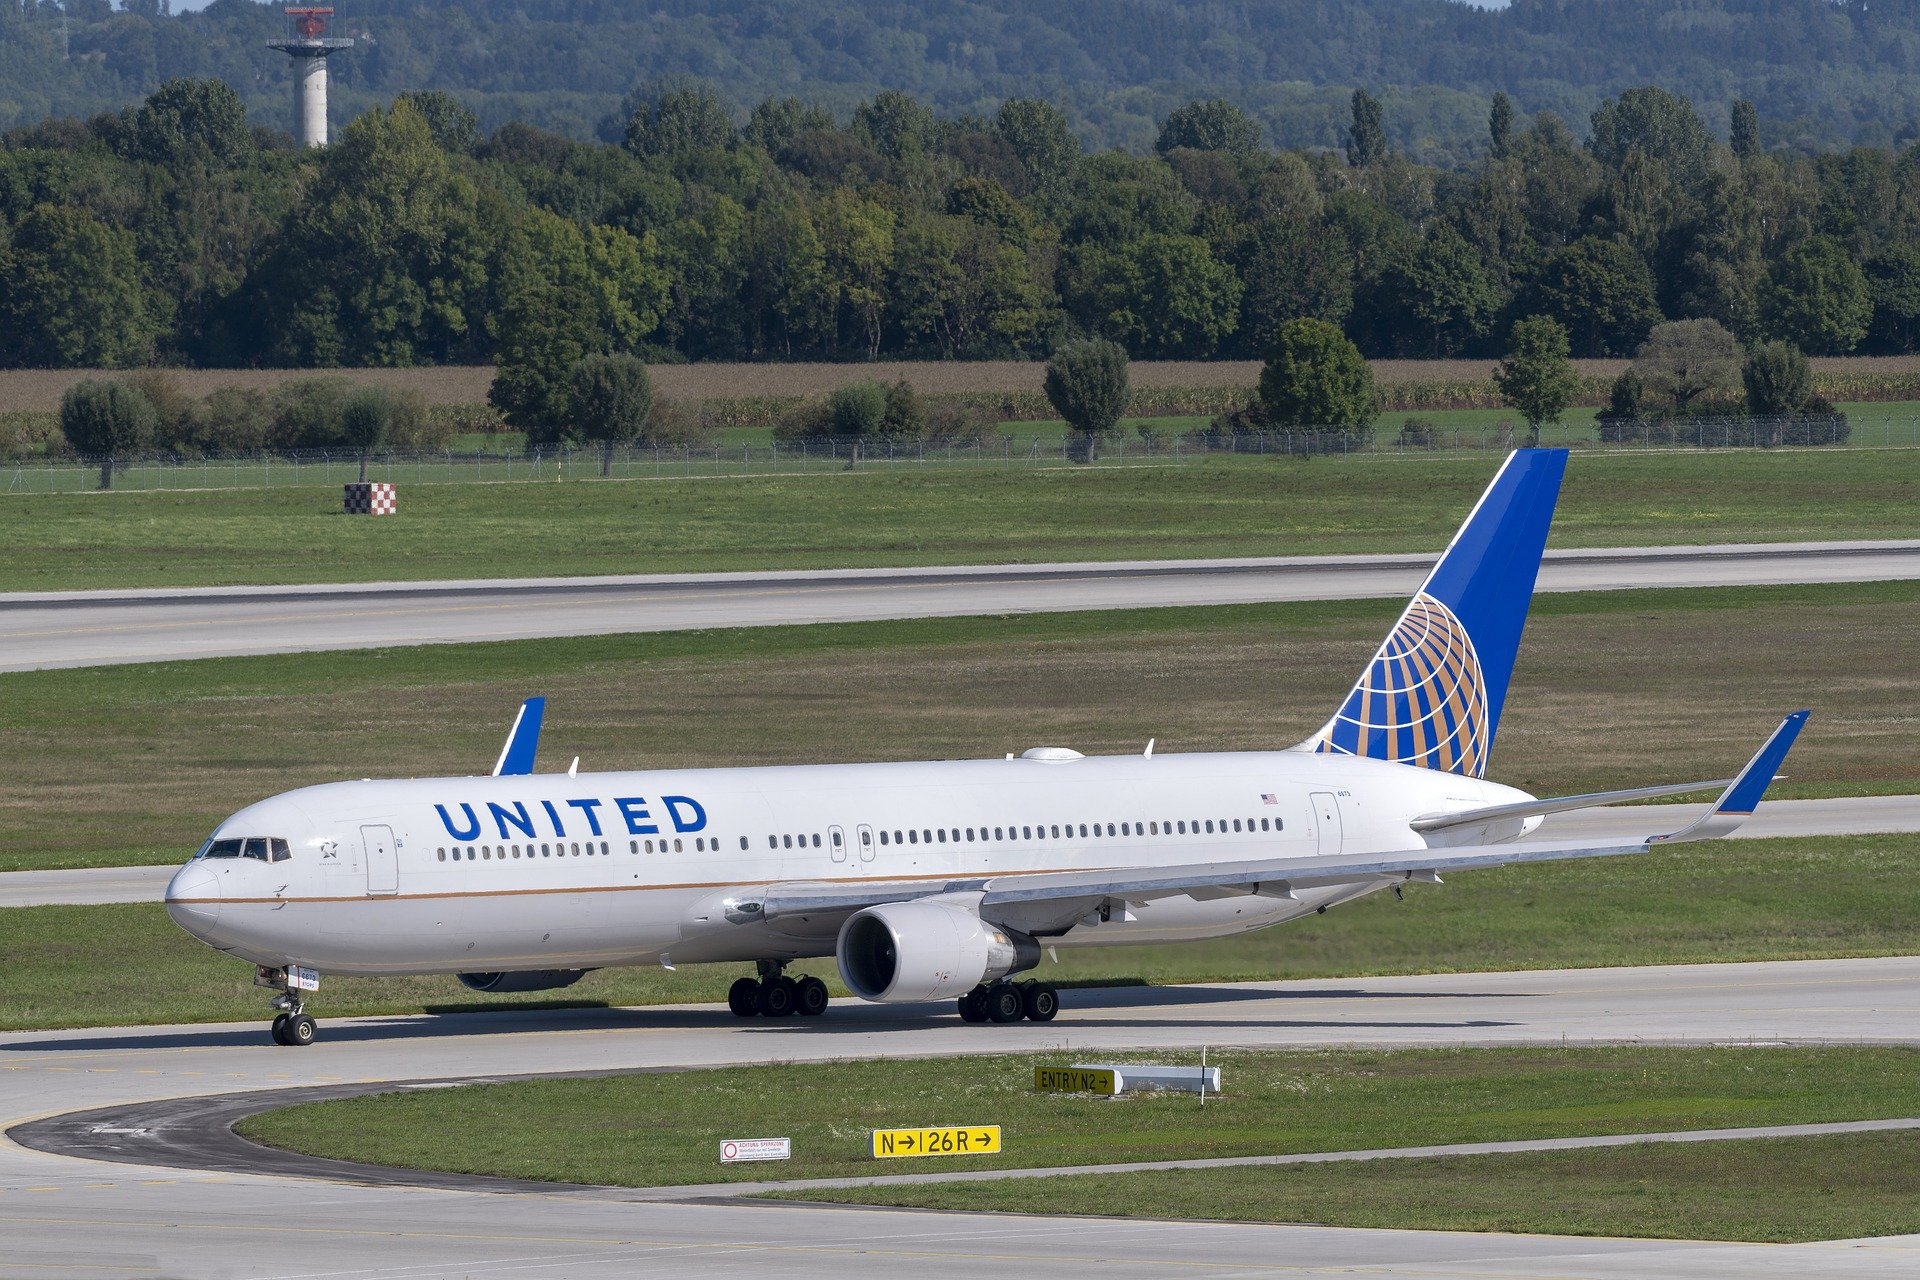 United Airlines Boeing on the taxiway